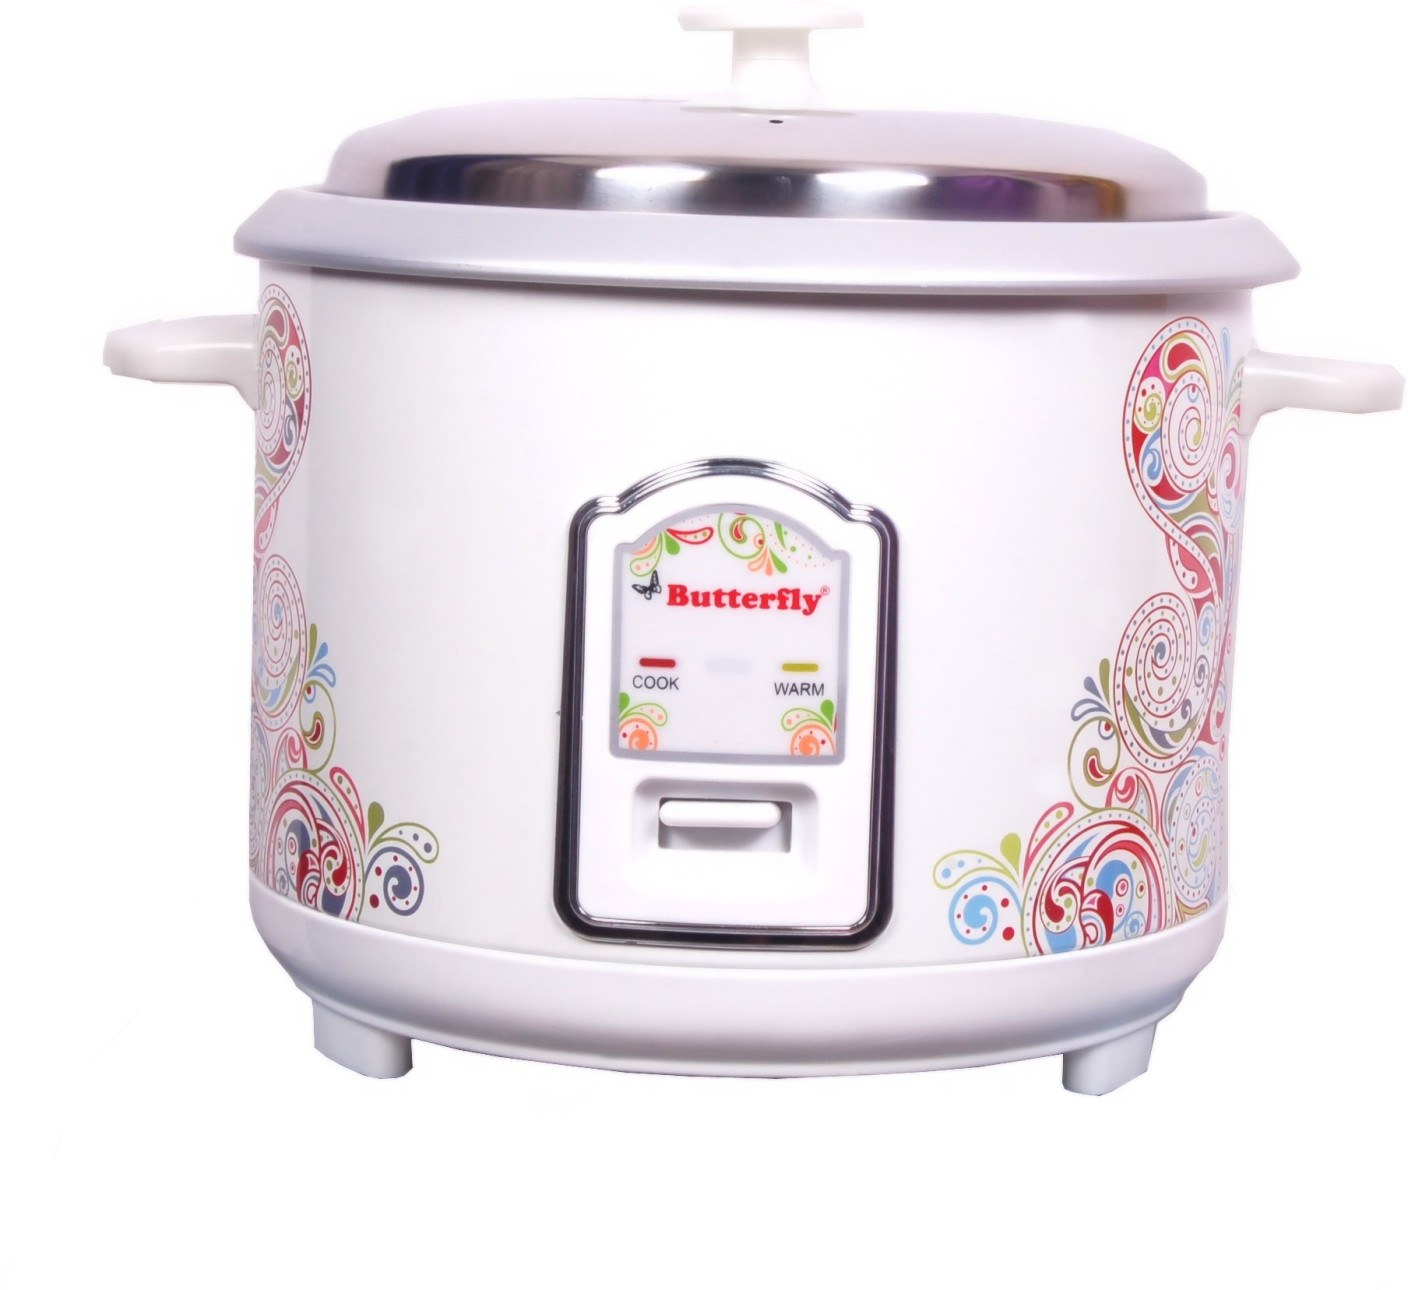 Butterfly Kitchen Appliances Butterfly Raga Electric Rice Cooker With Steaming Feature Price In